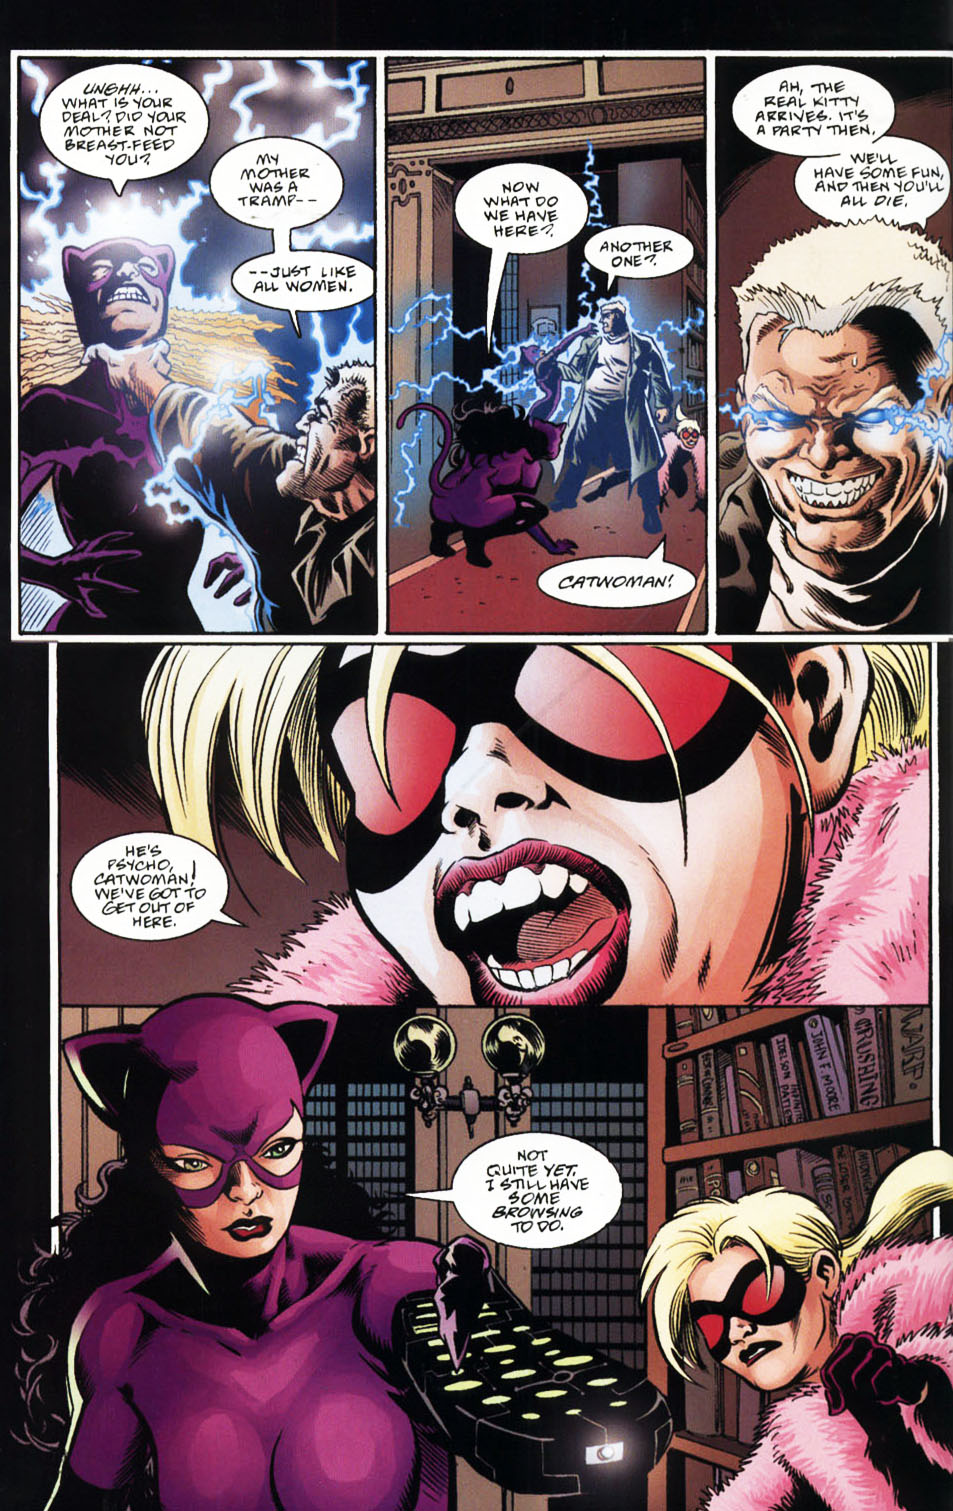 Birds Of Prey - Batgirl-Catwoman 1-44 RyderBurnham ValLewton.jpg